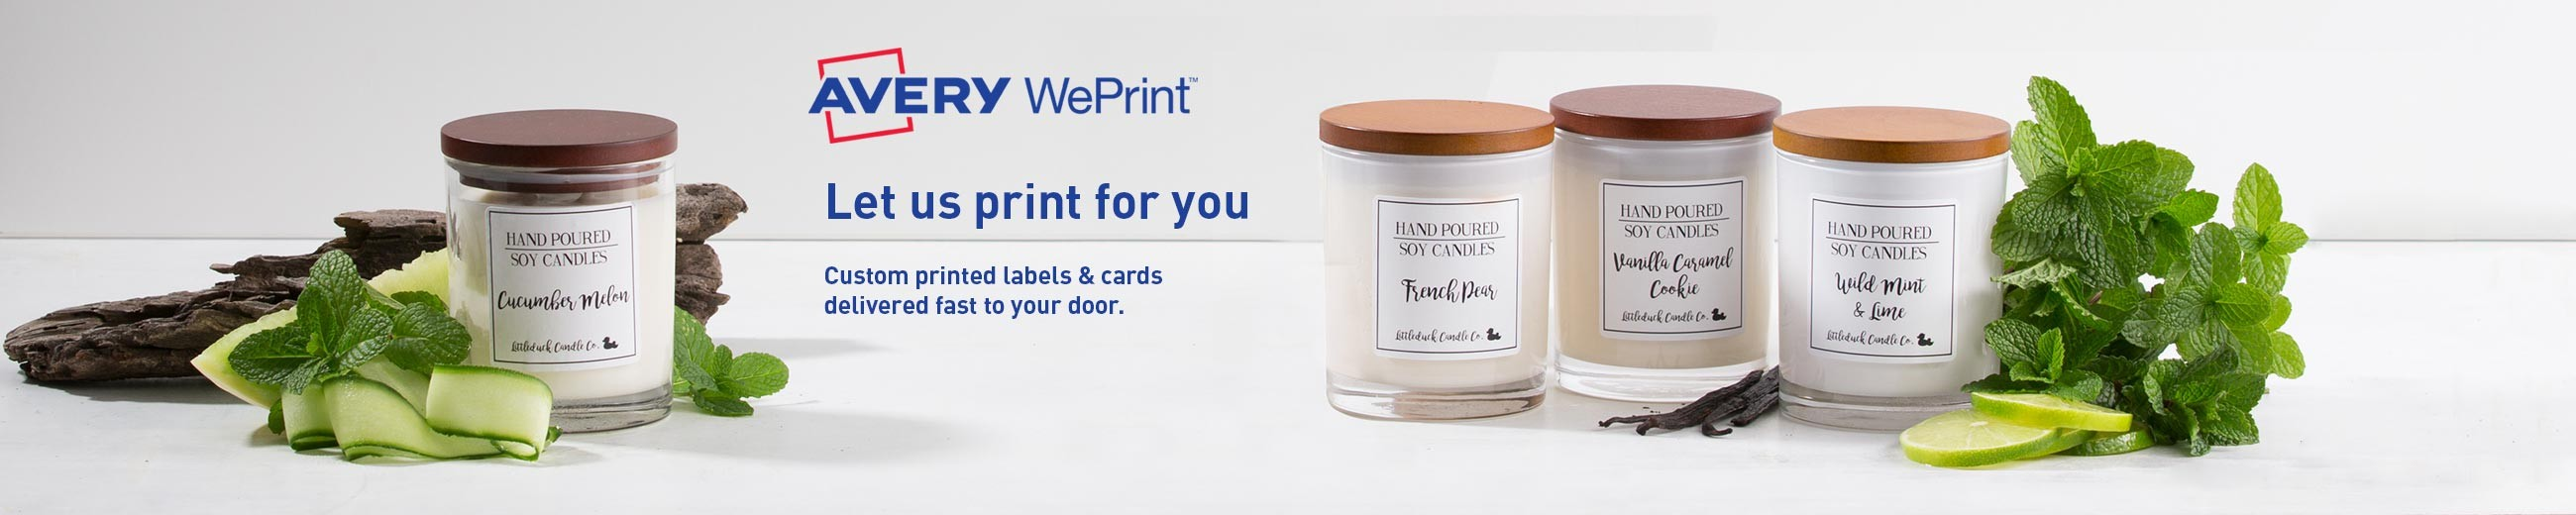 WePrint Candles